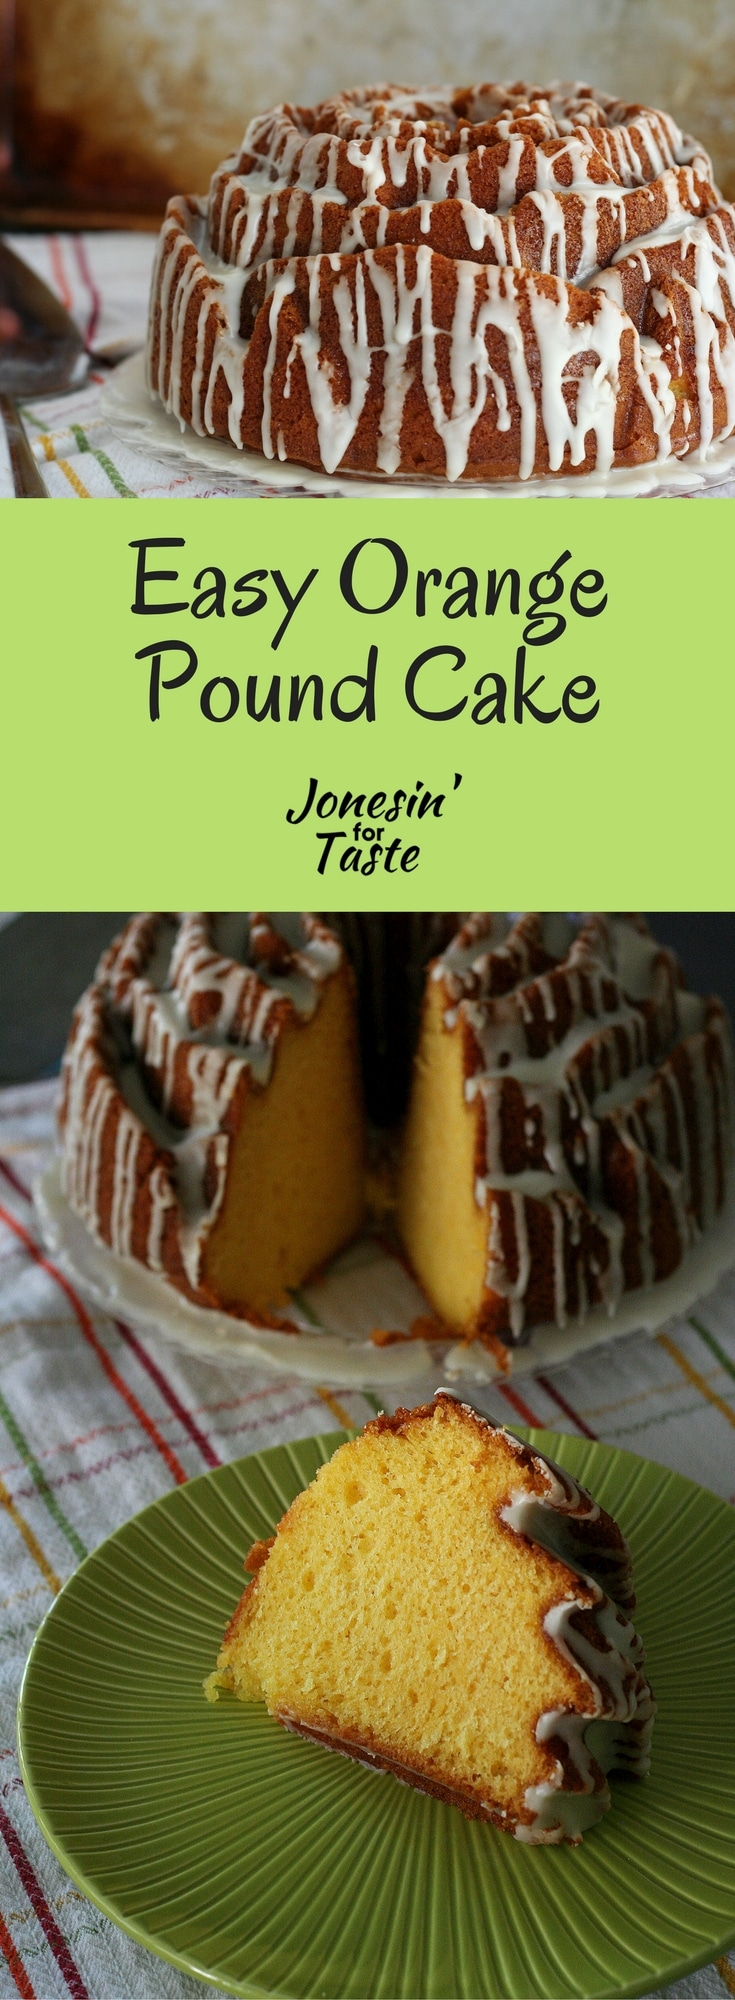 Easy Orange Pound Cake with a simple orange glaze is a crowd pleasing favorite that comes together with just 6 ingredients.